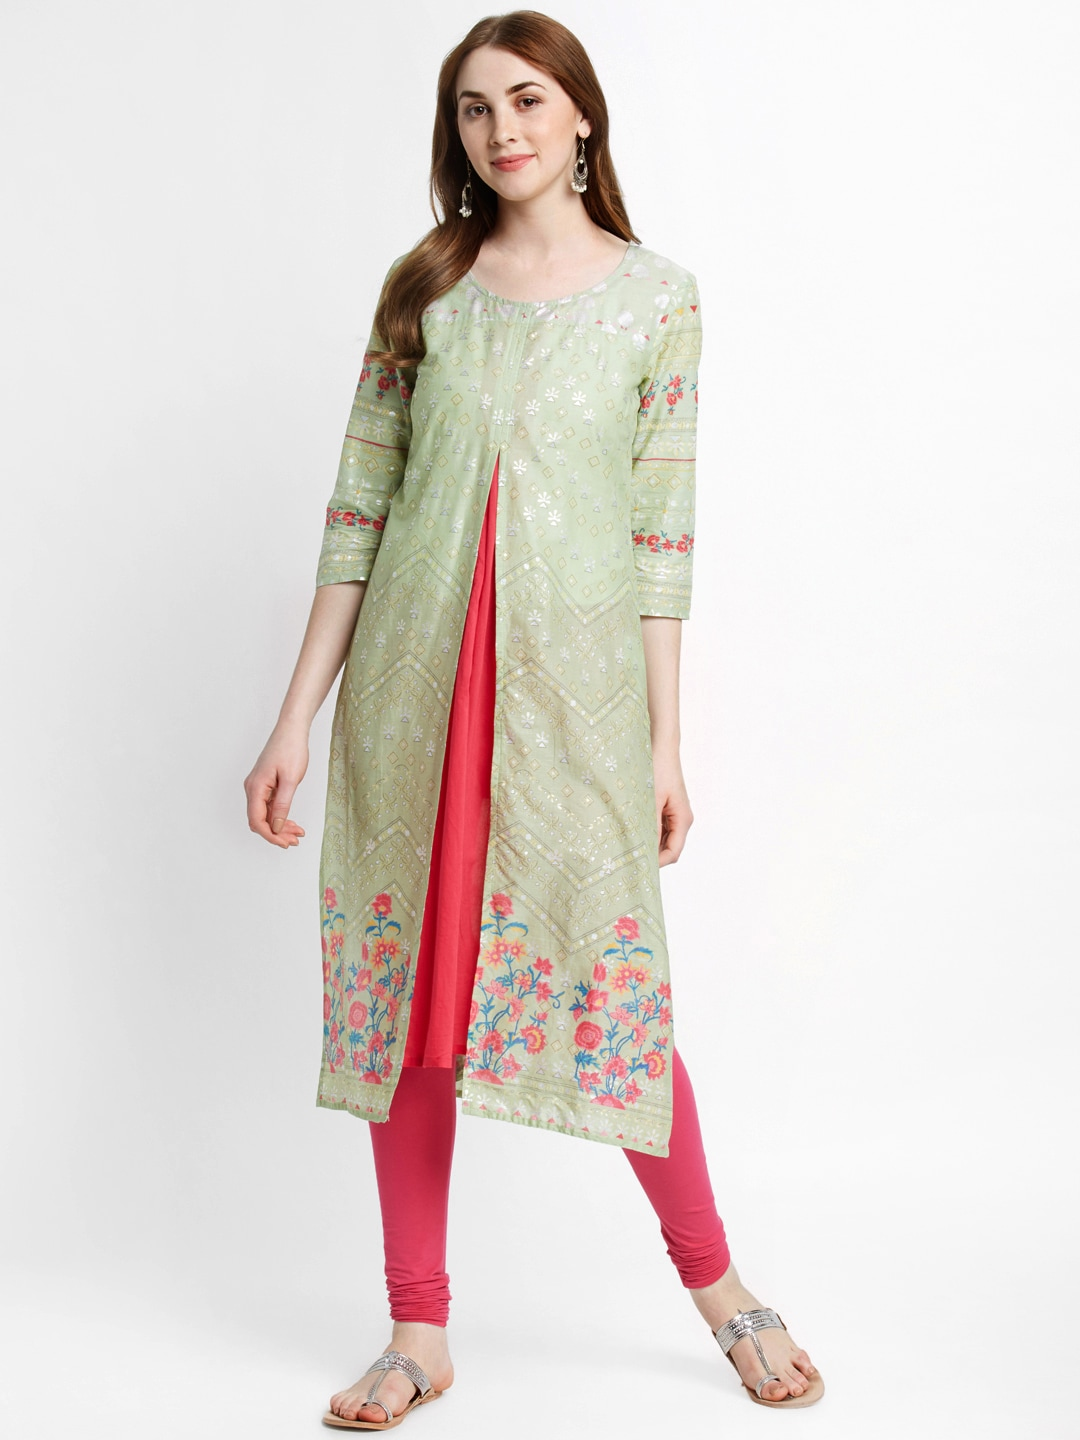 7d99693db84 Rangmanch By Pantaloons Green Kurtas - Buy Rangmanch By Pantaloons Green  Kurtas online in India